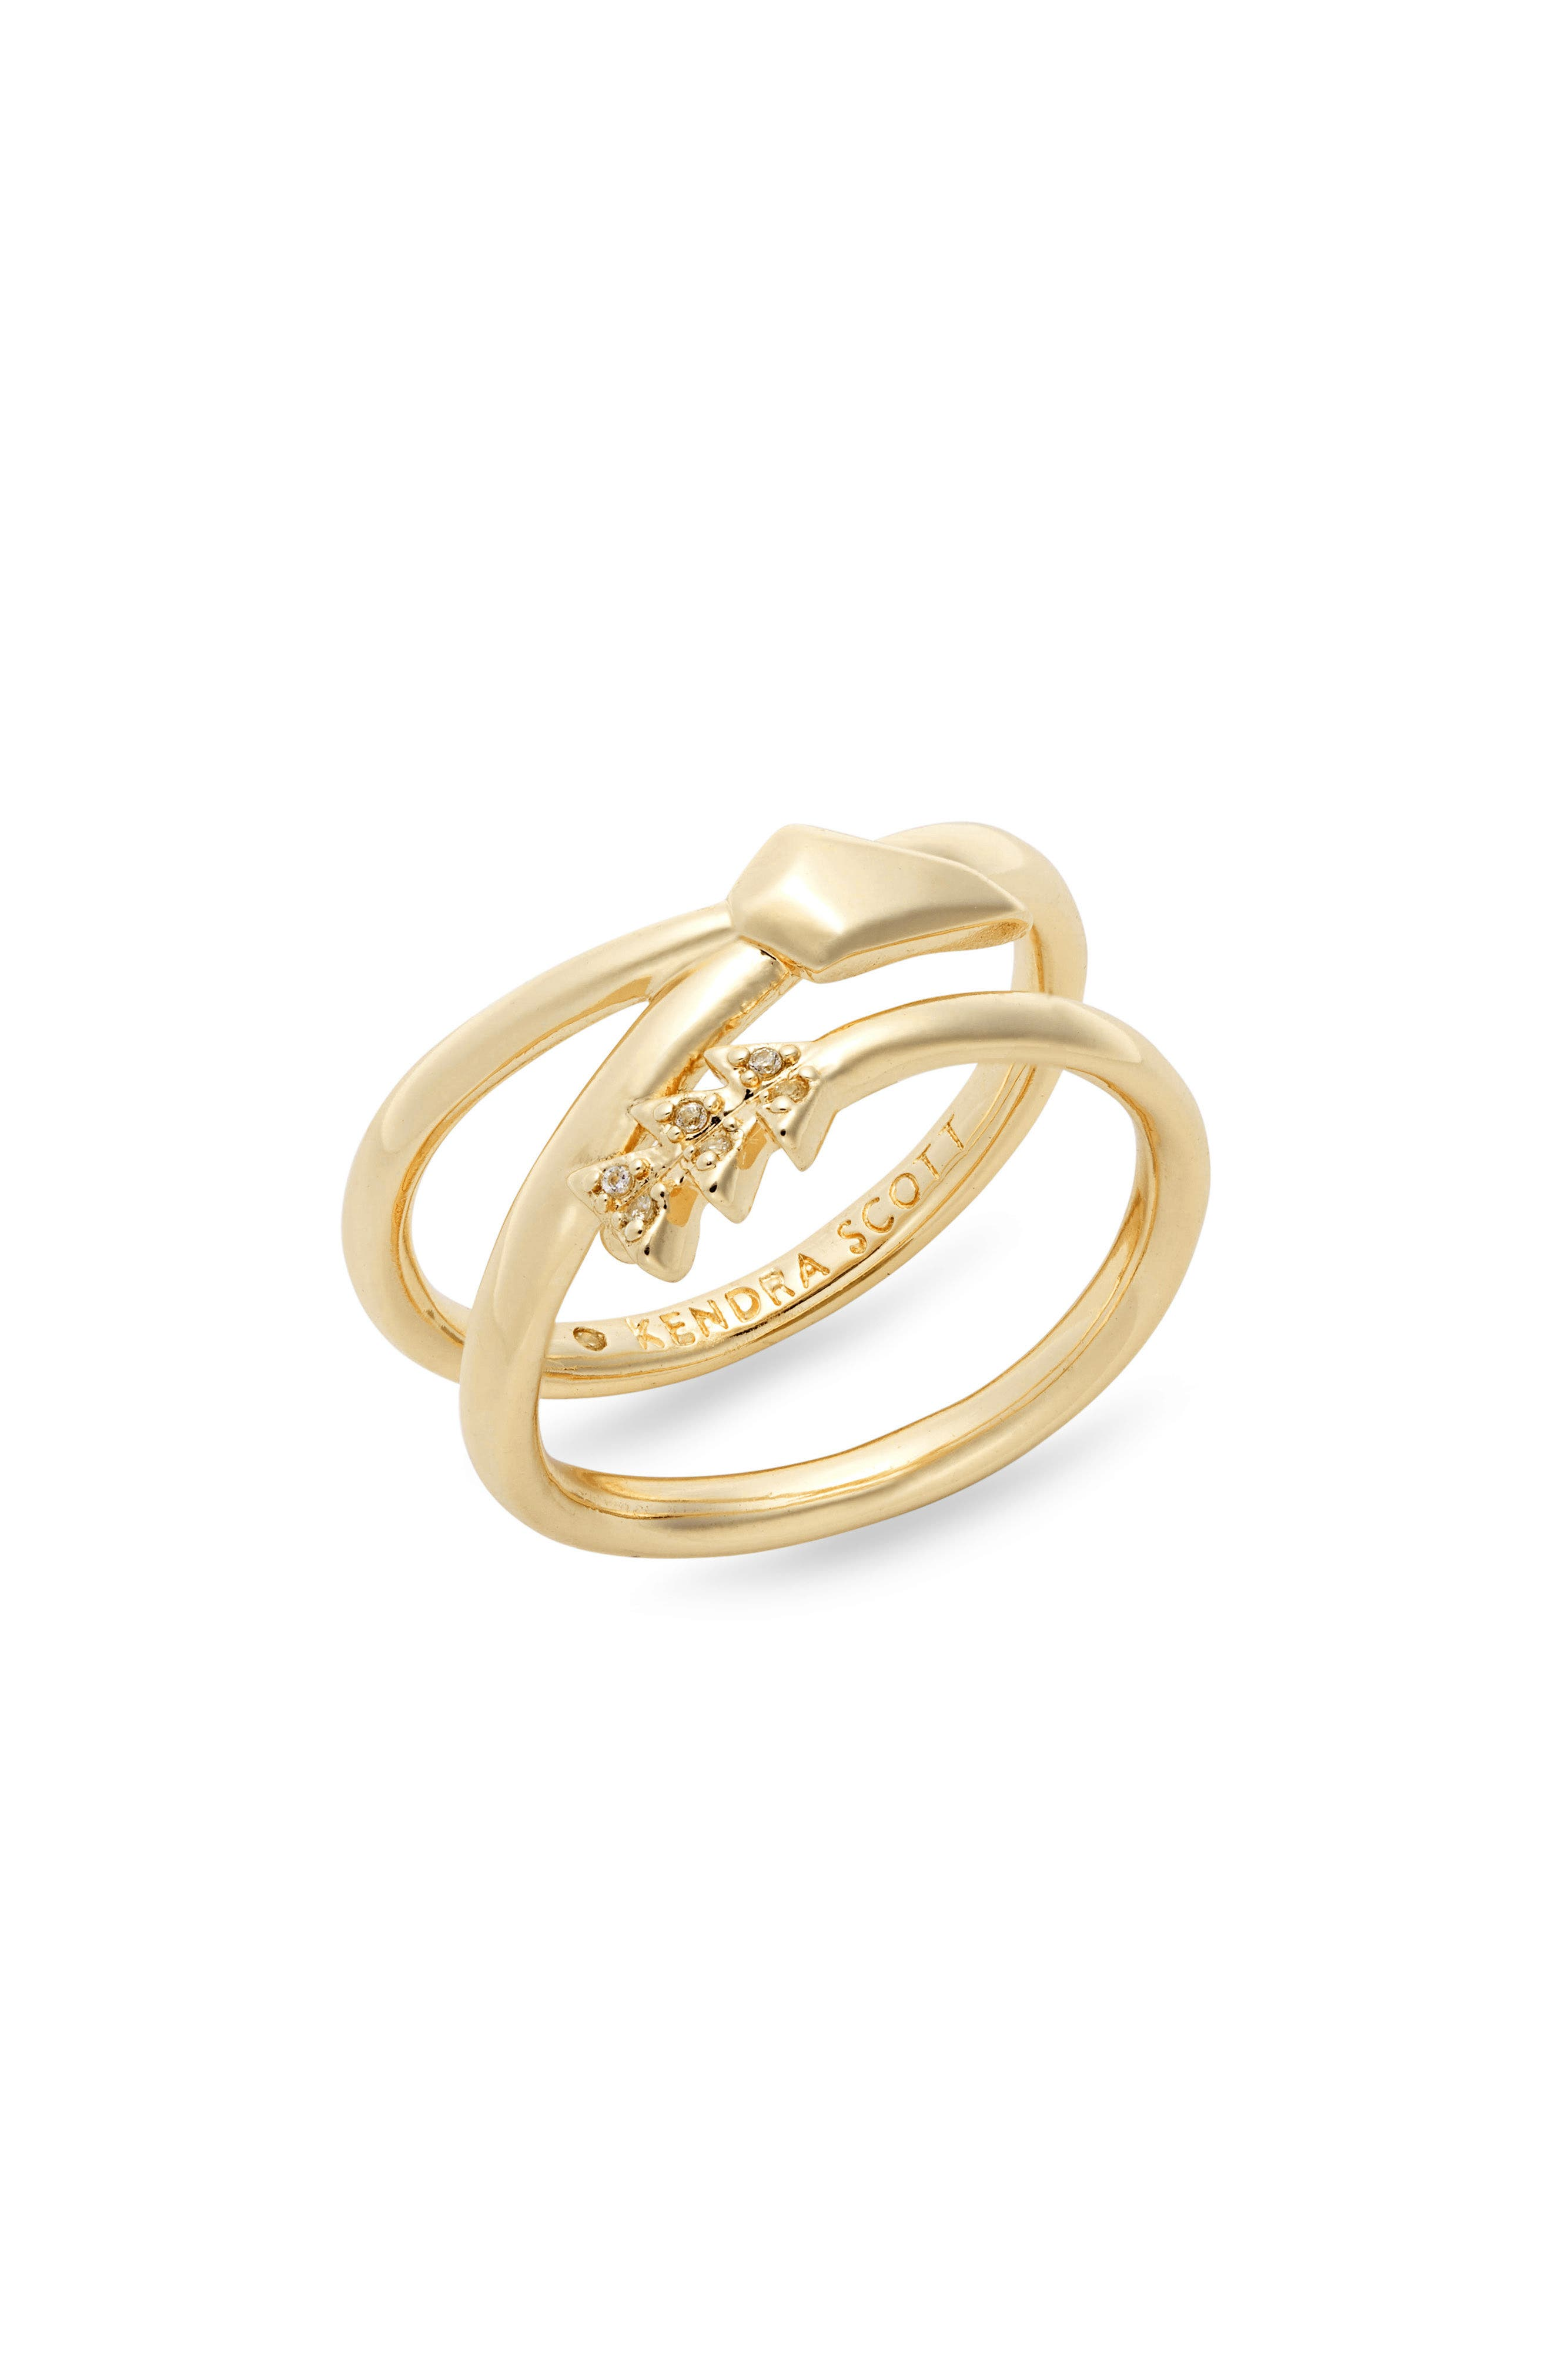 women and girls Club charm ring made with copper wire in a gold color